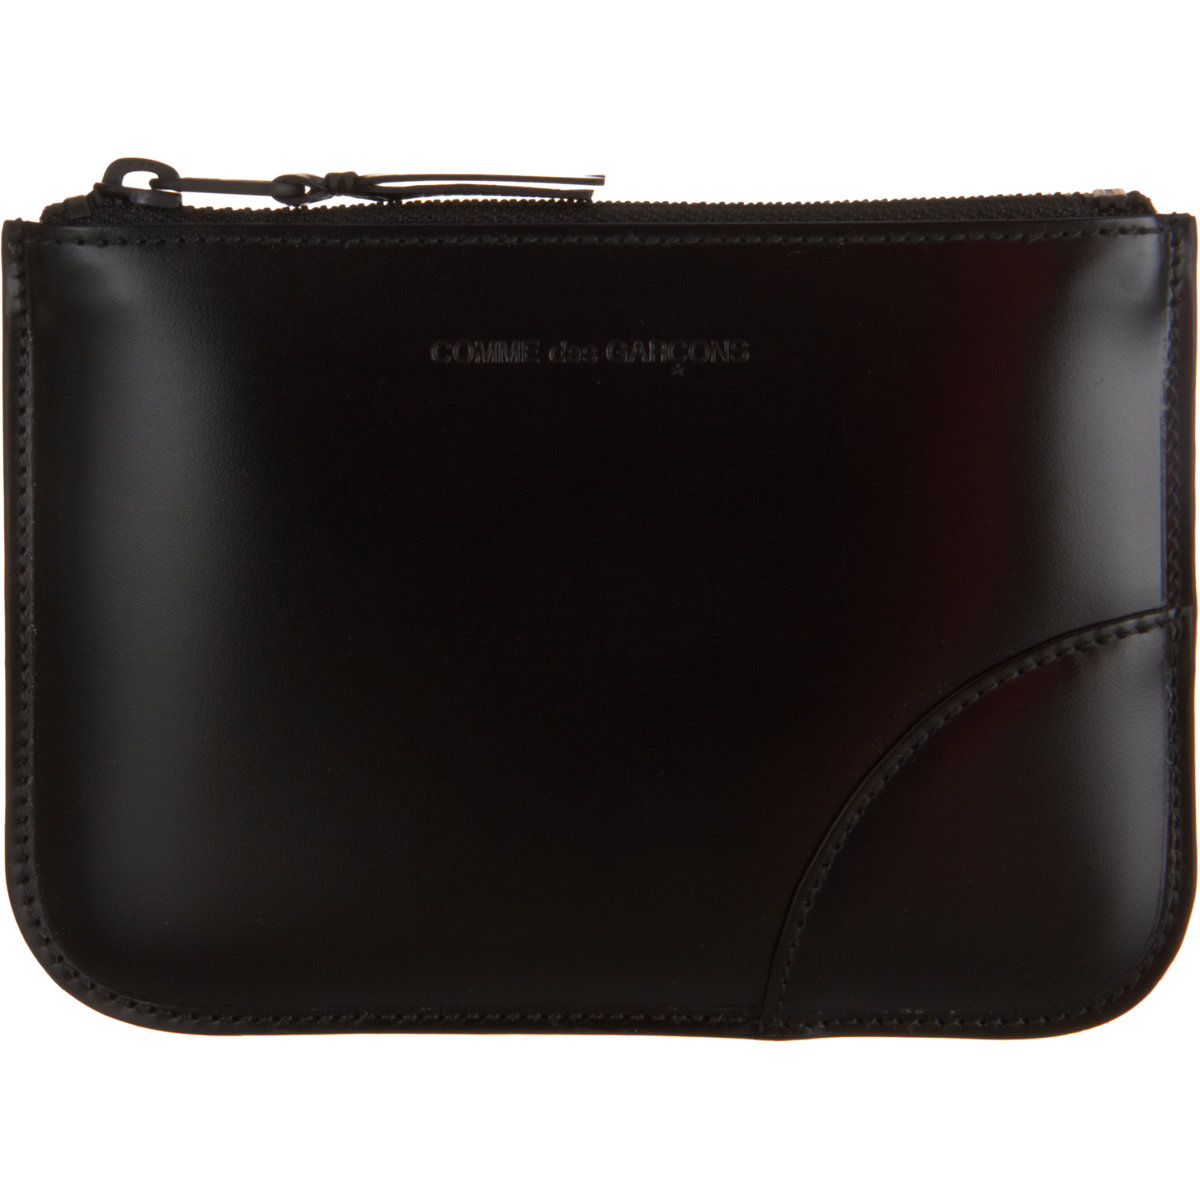 Extremely Cheap Price Buy Cheap 2018 Comme Des Gar莽ons Wallet flat wallet Cheap Great Deals Particular Discount sAY3cfsG6G